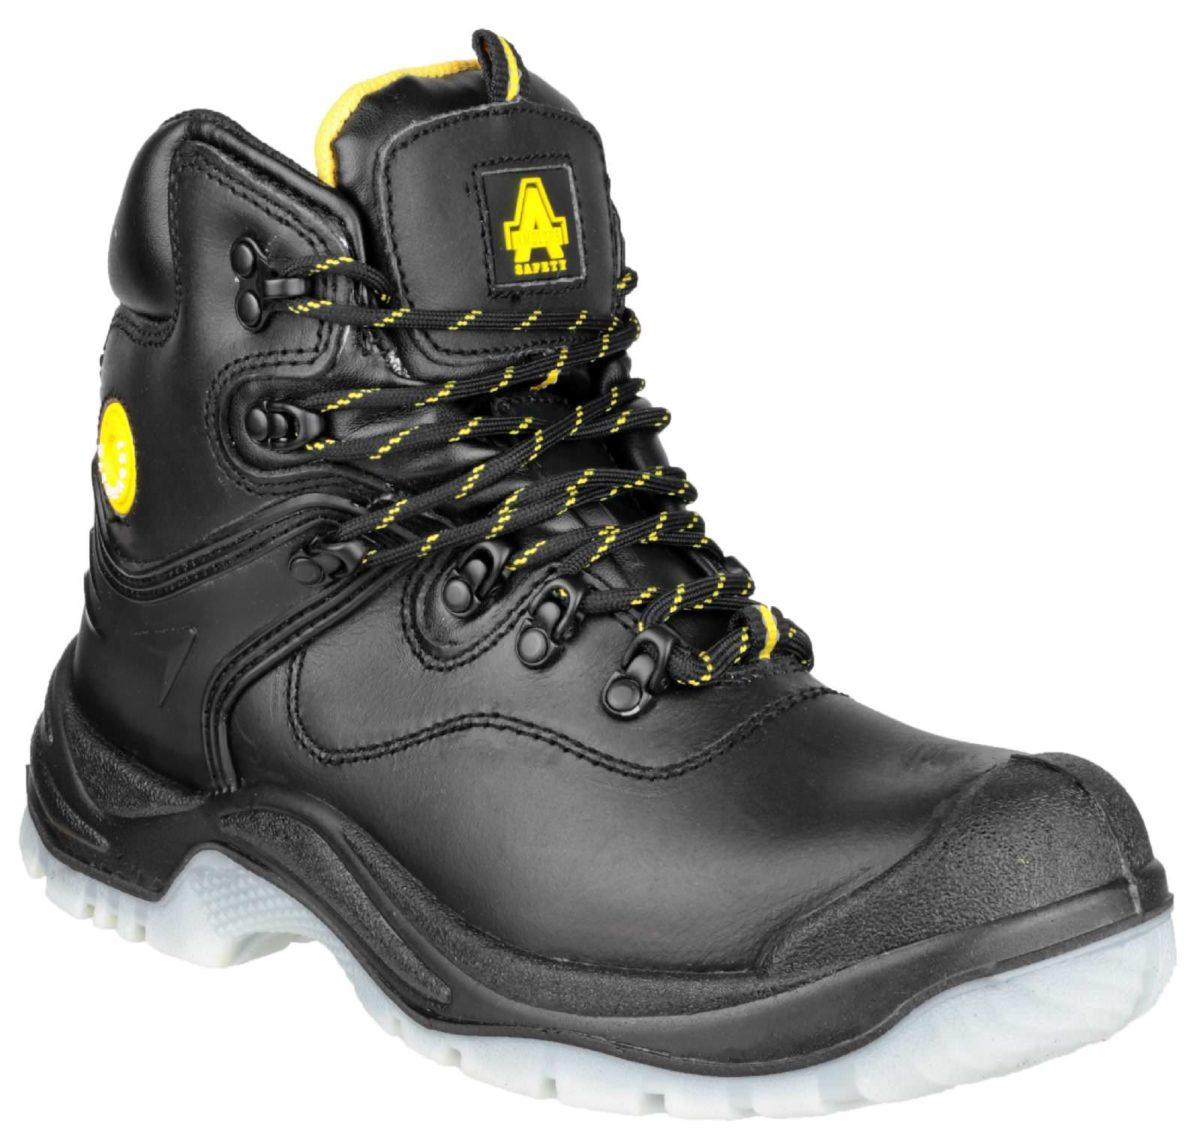 Amblers FS198 Safety Boot